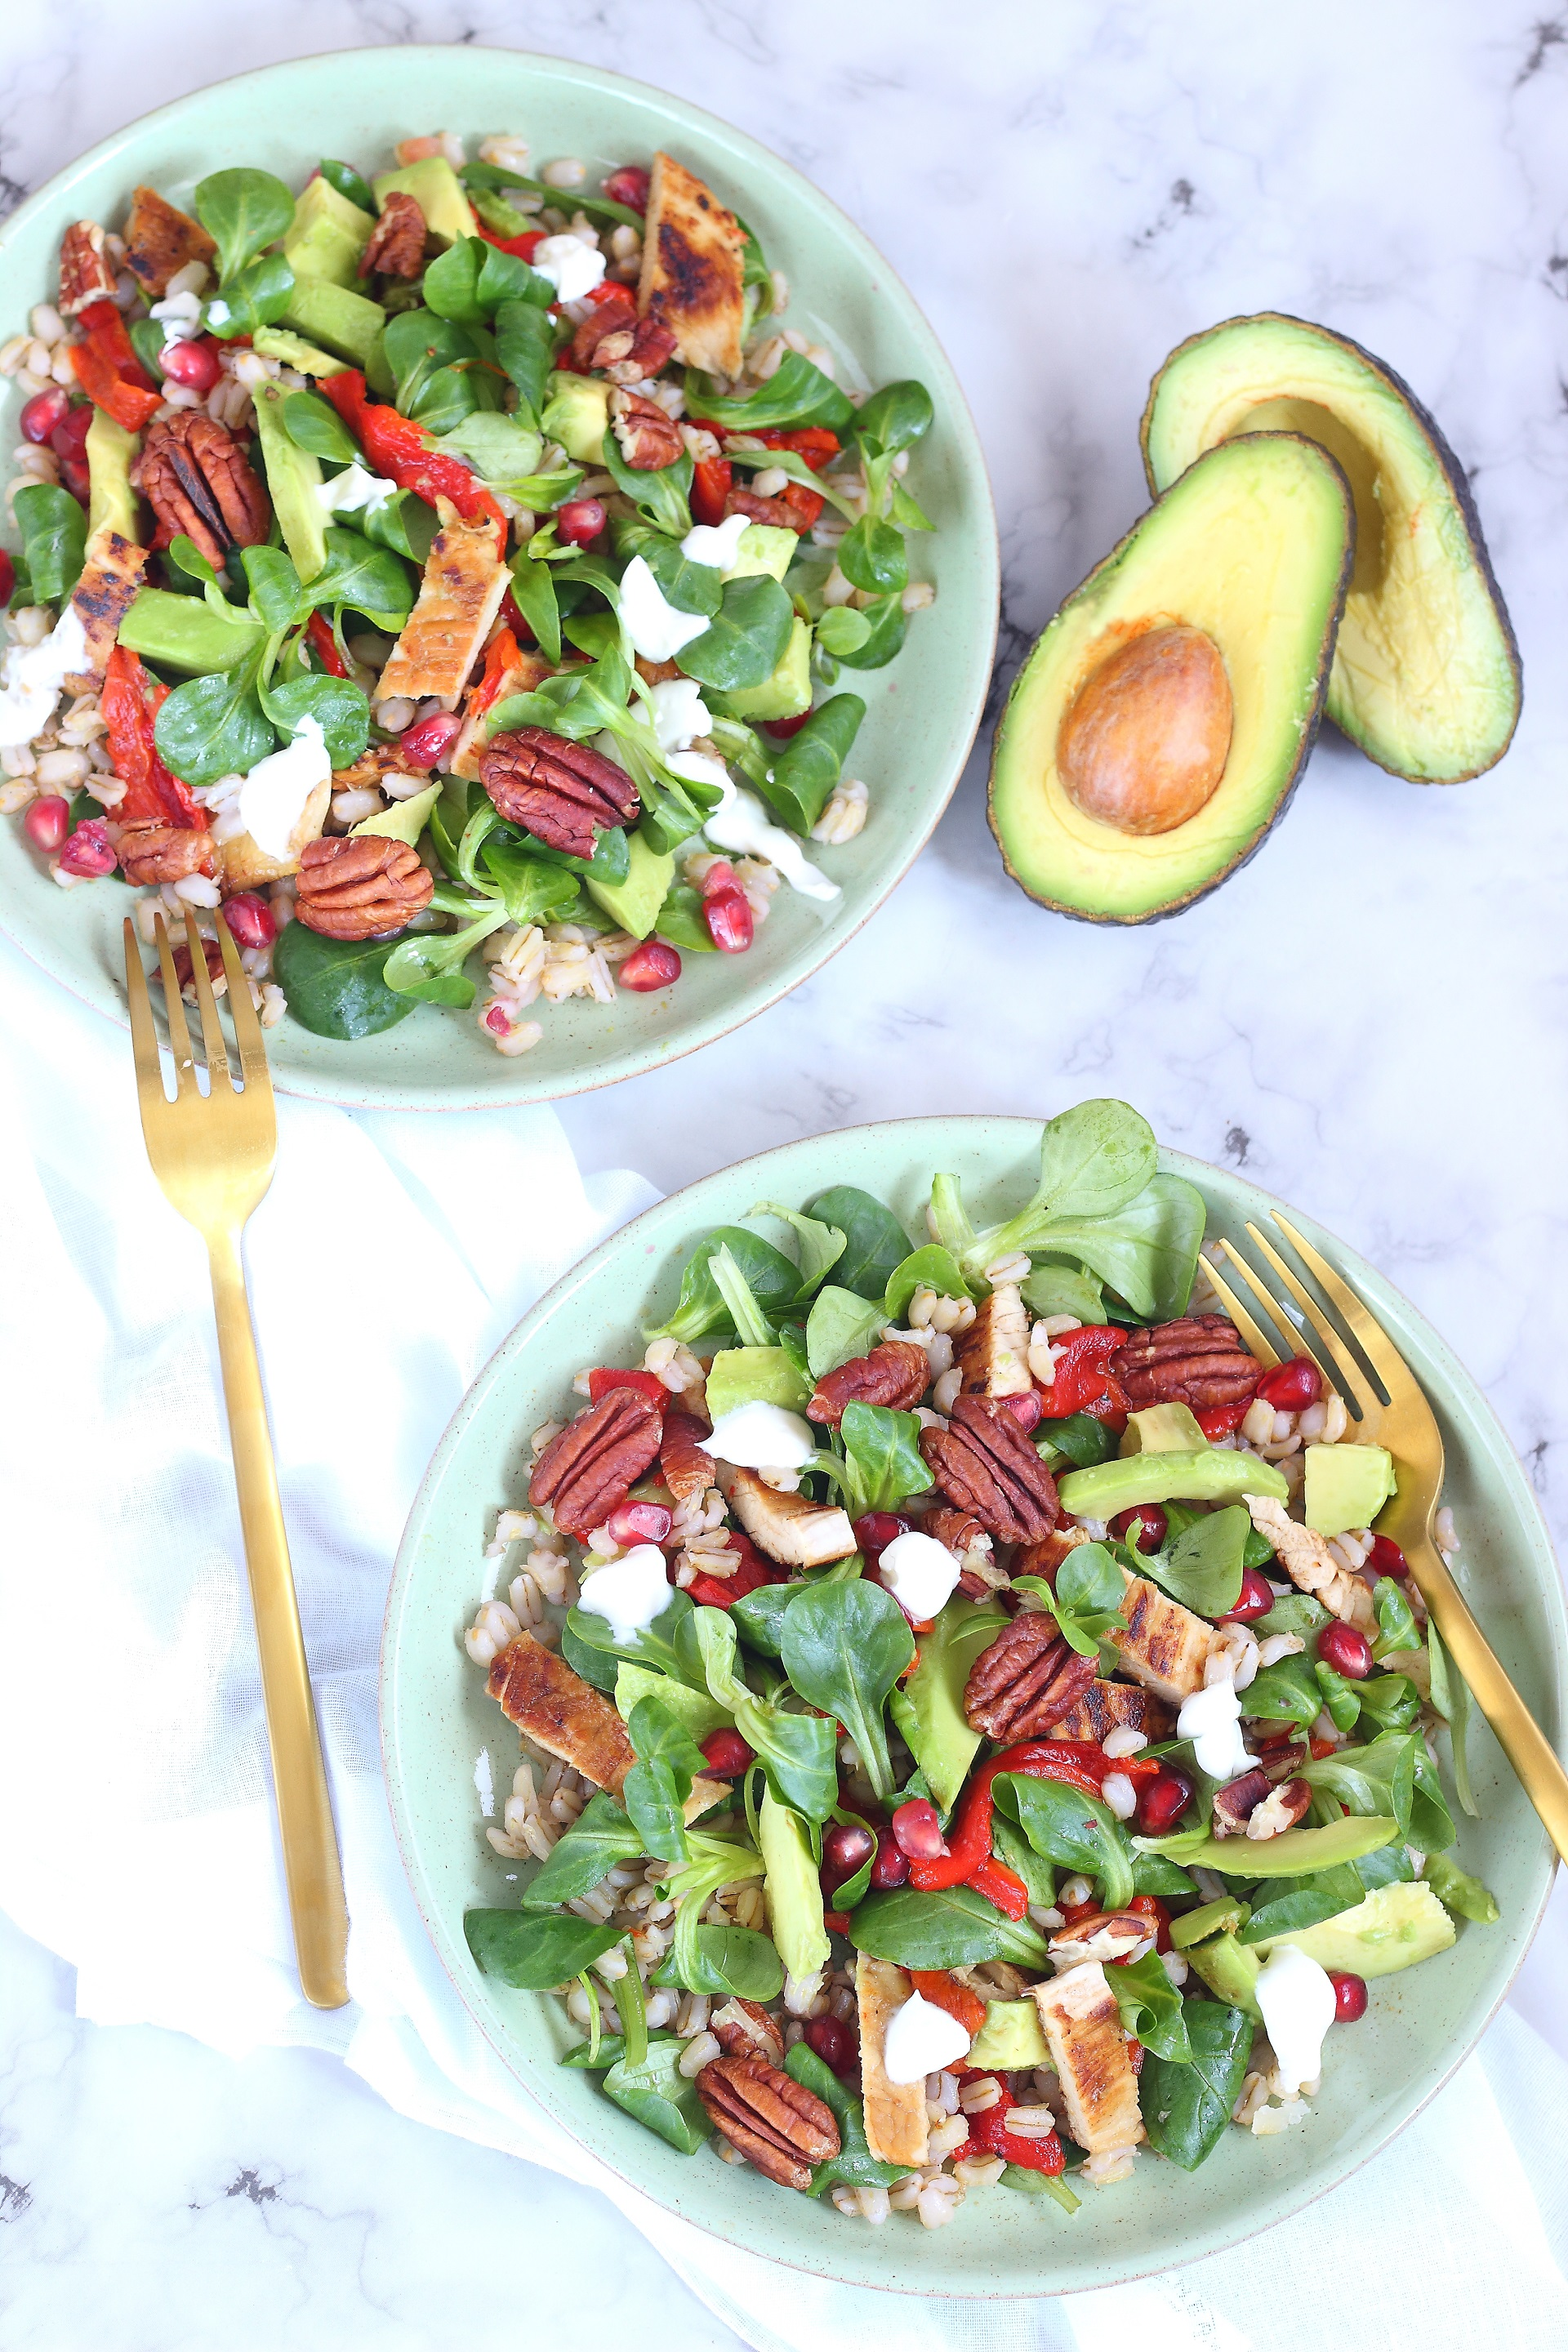 Sweet pepper and avocado salad